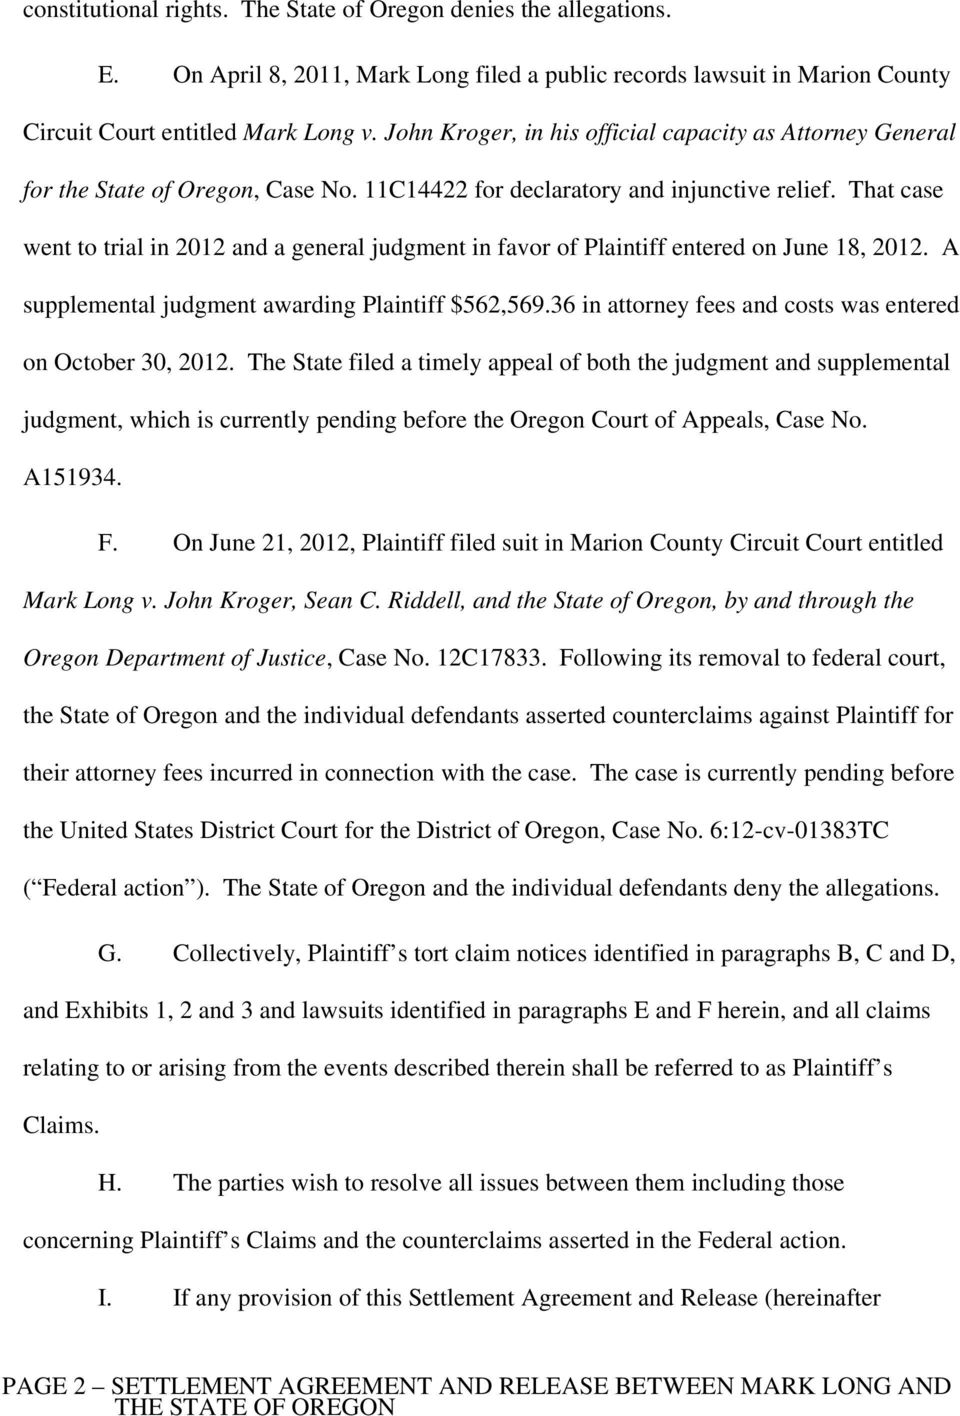 That case went to trial in 2012 and a general judgment in favor of Plaintiff entered on June 18, 2012. A supplemental judgment awarding Plaintiff $562,569.